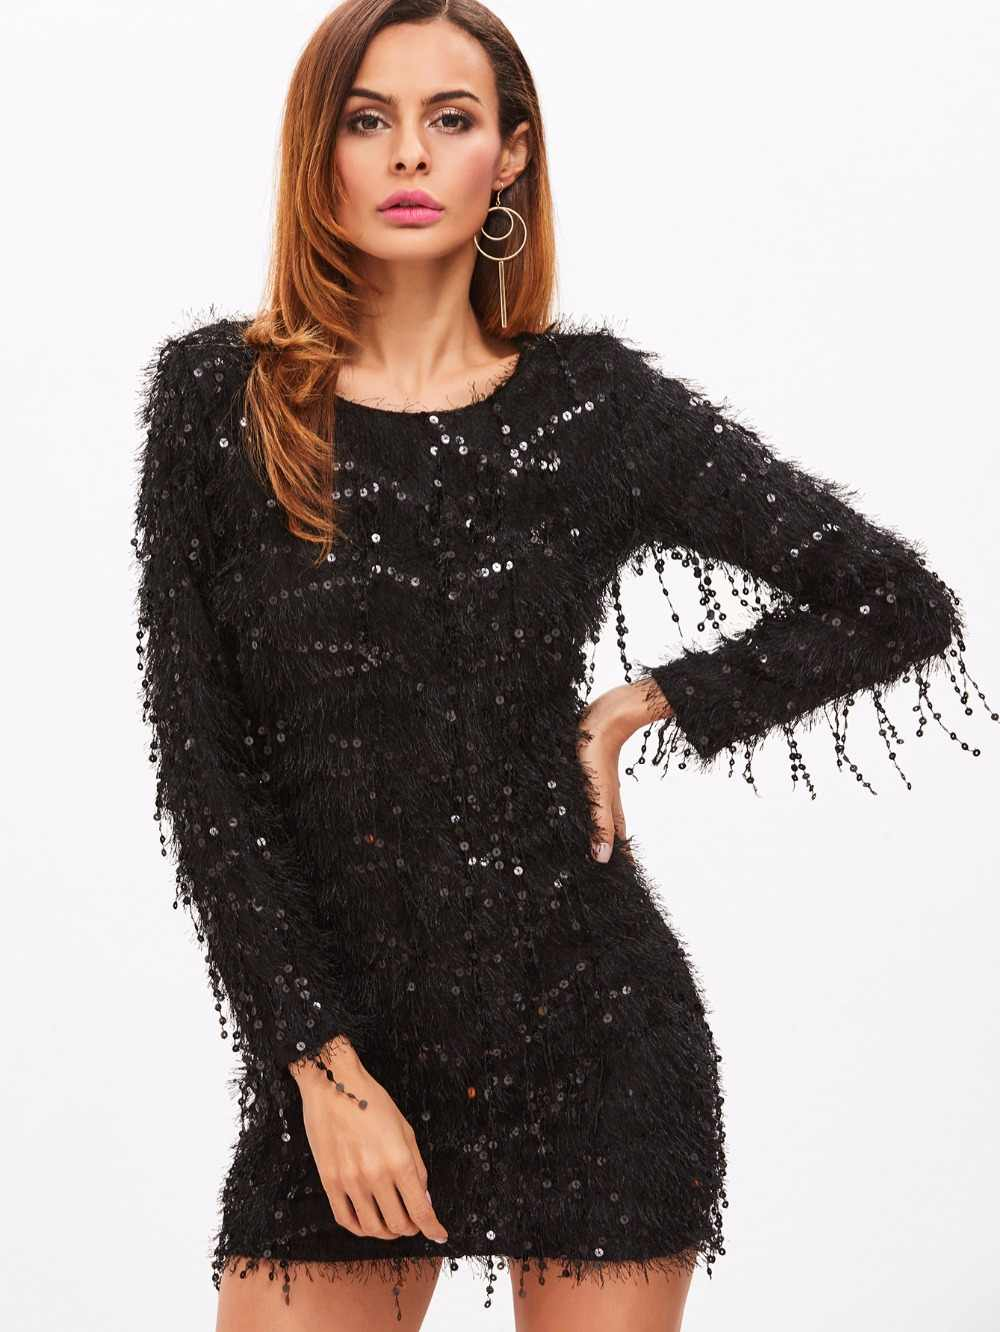 3650eba480d7 Detail Feedback Questions about Winter Black Party Dress Long Sleeve ...